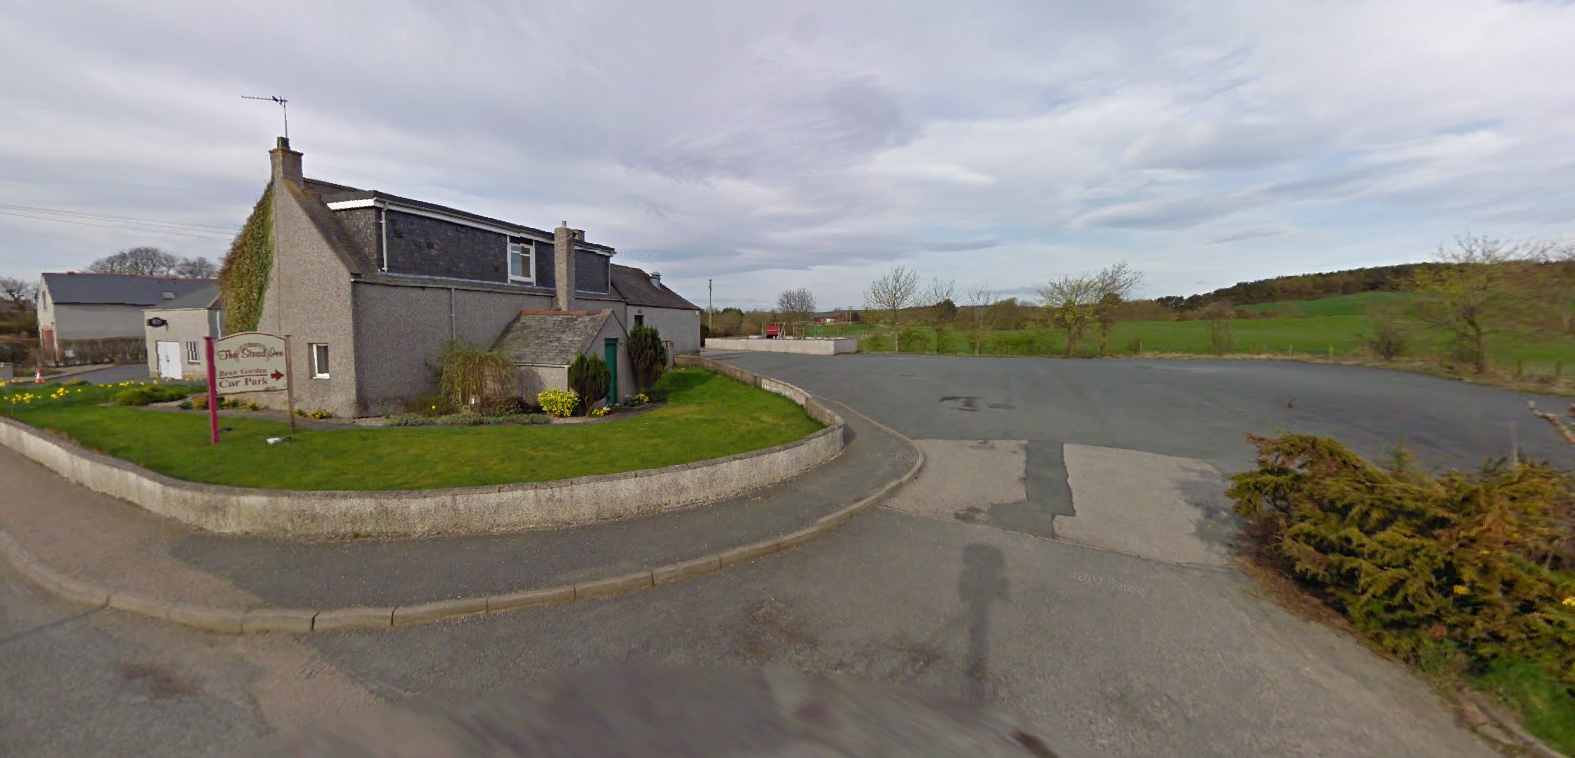 Google Maps image of the Inn and adjoining car park